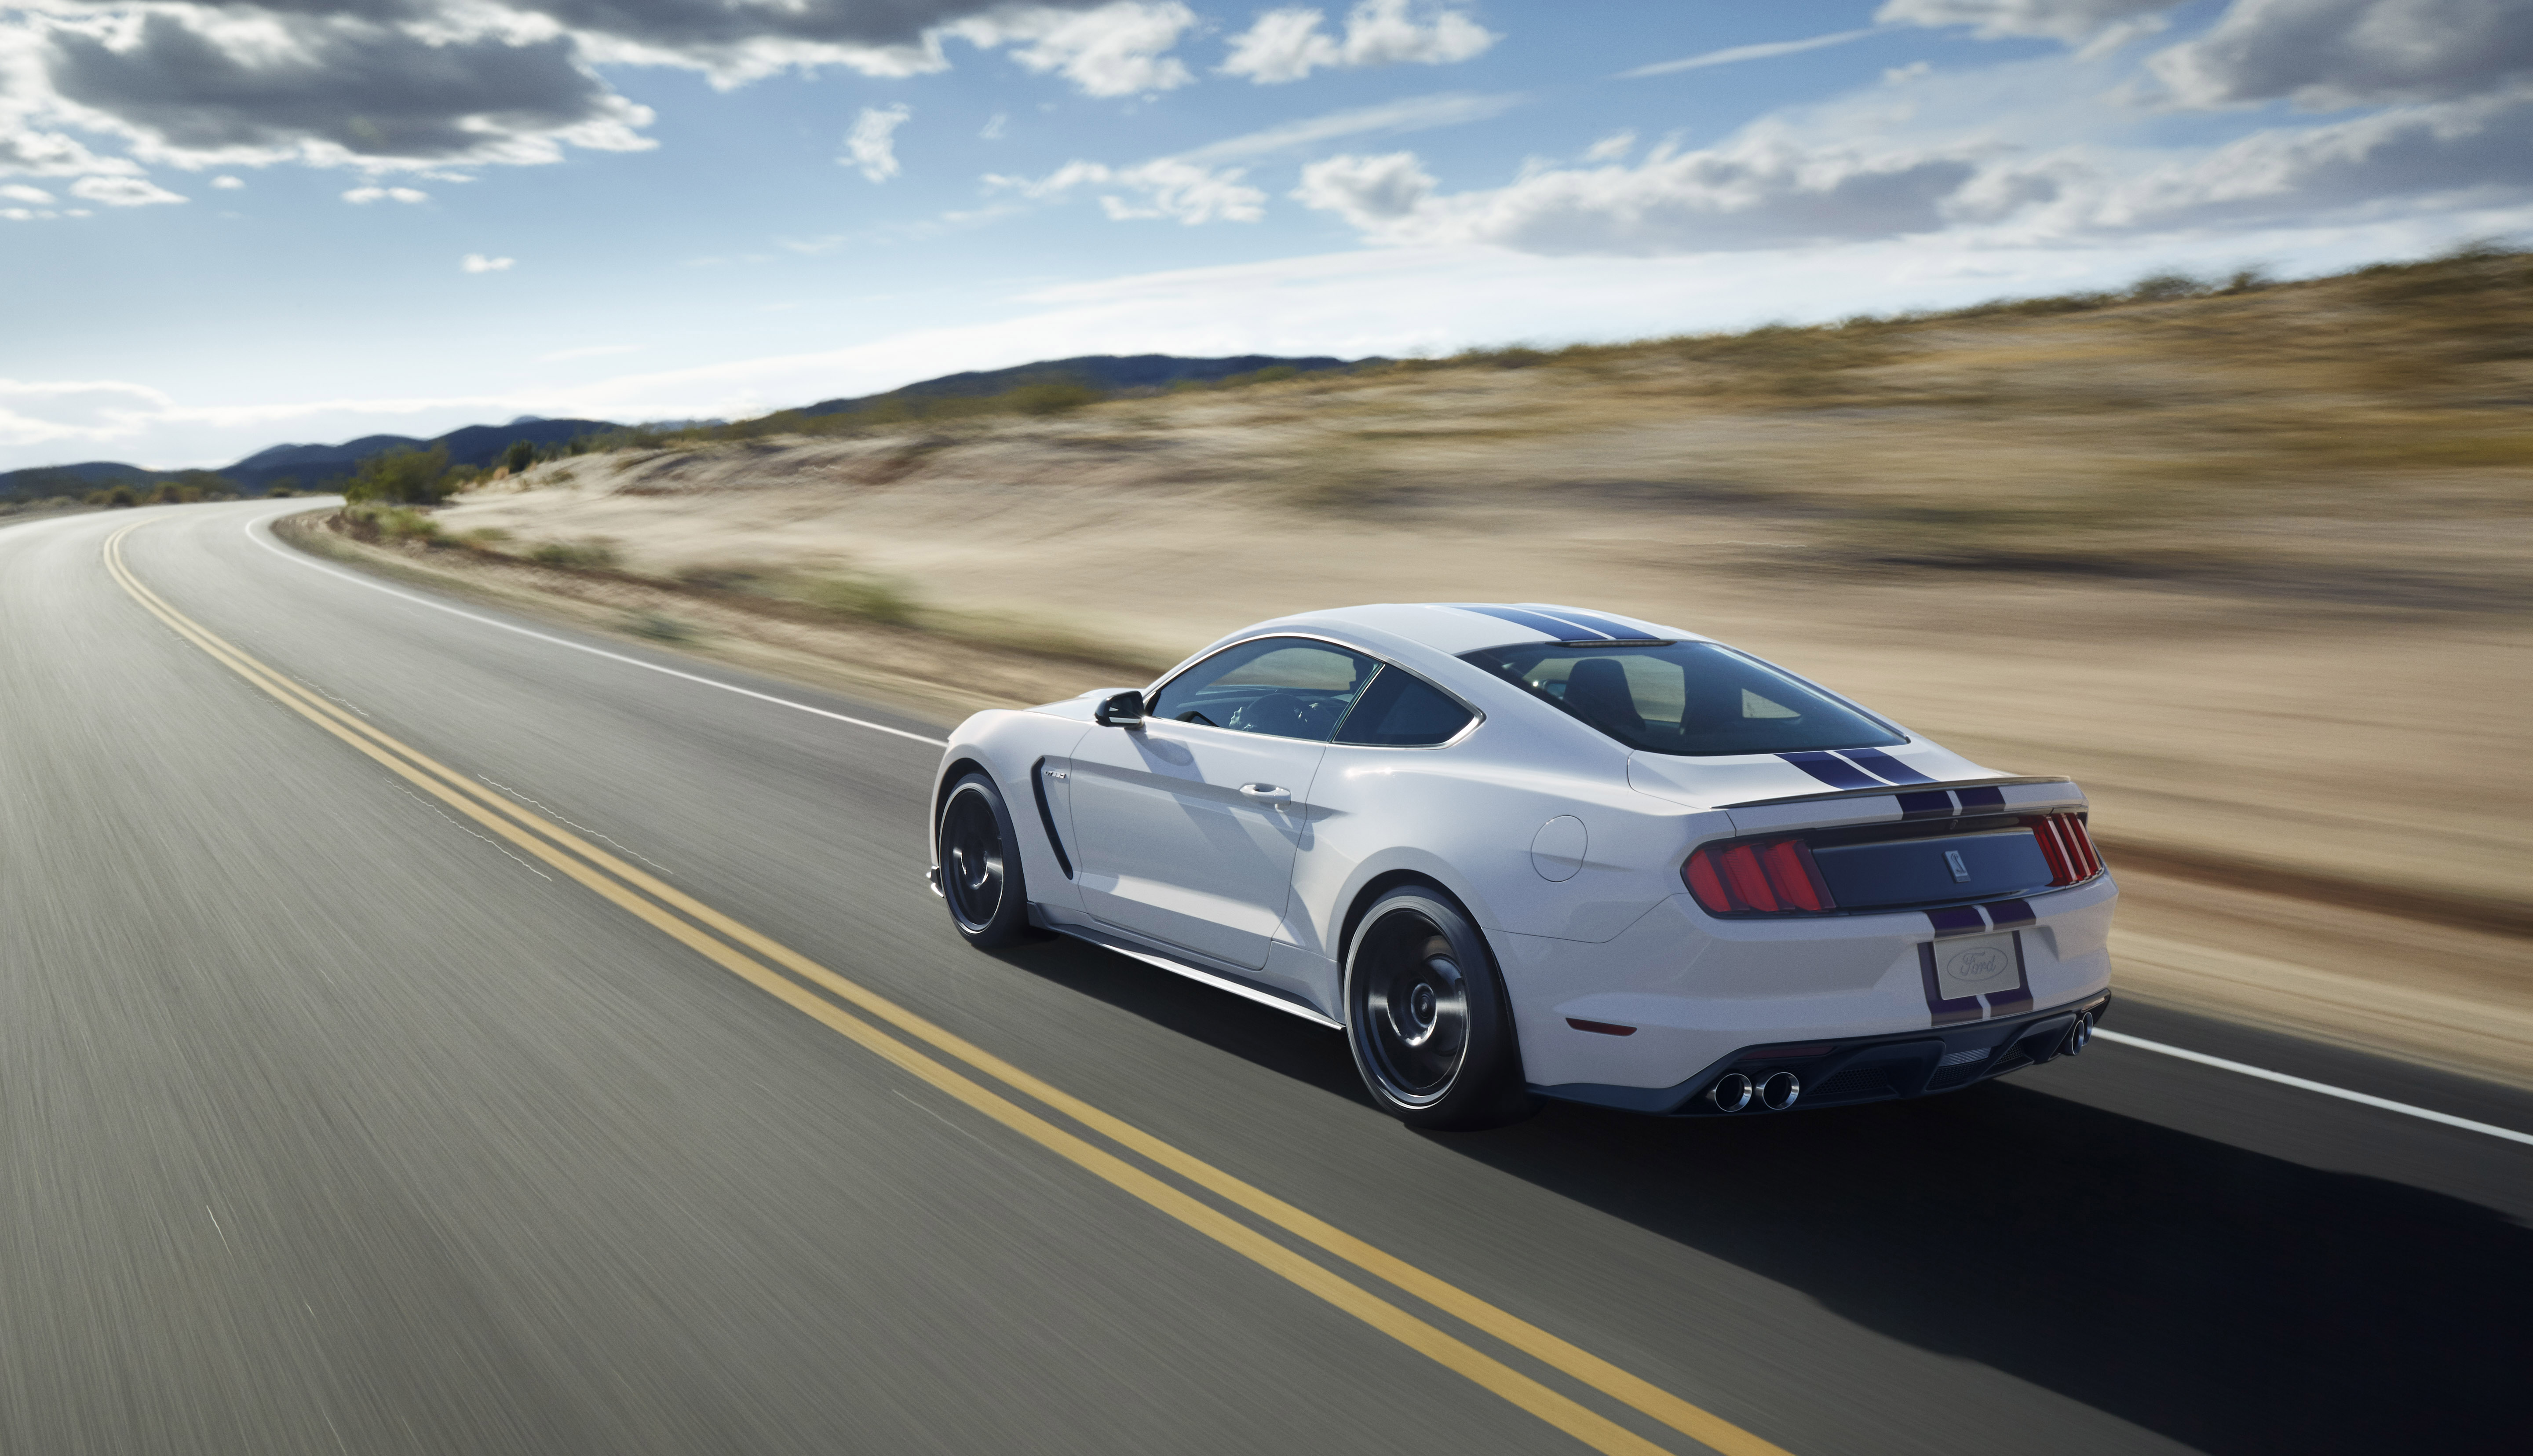 2016 Ford Mustang Shelby Gt350 Flat Plane V8 Pony Image